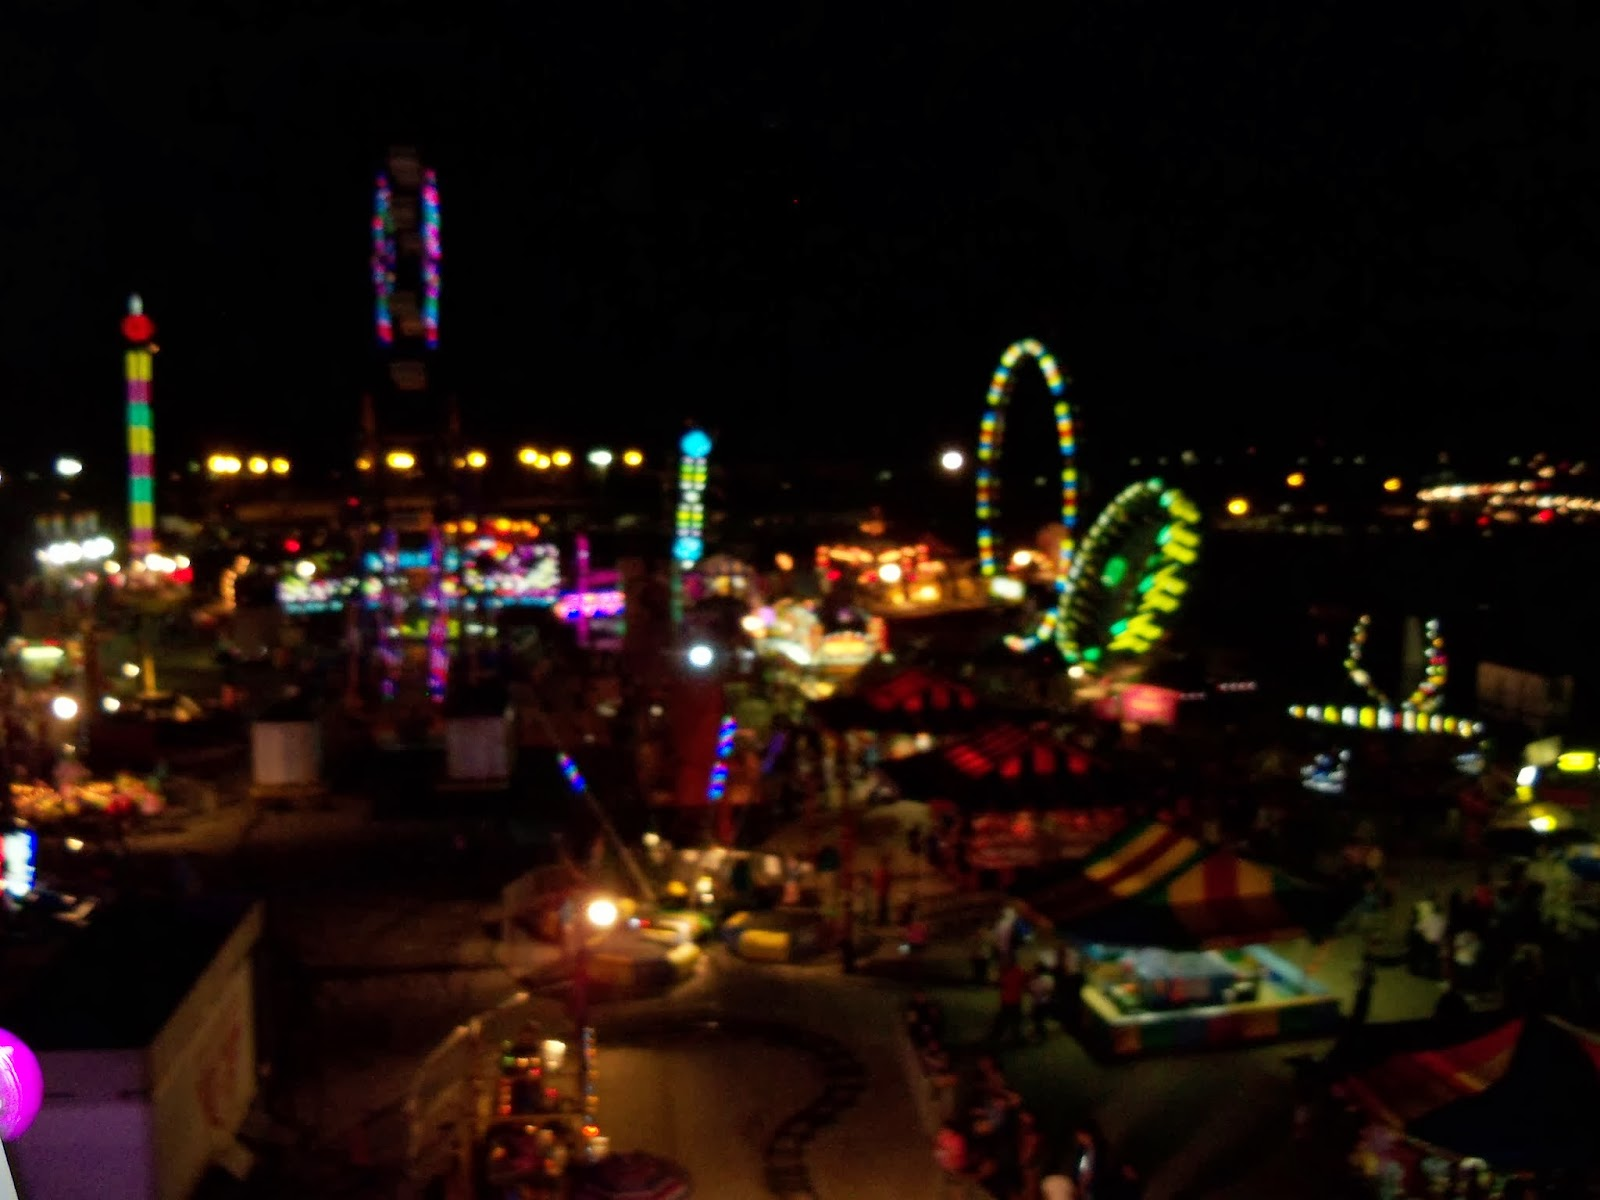 Fort Bend County Fair 2013 - 115_8054.JPG